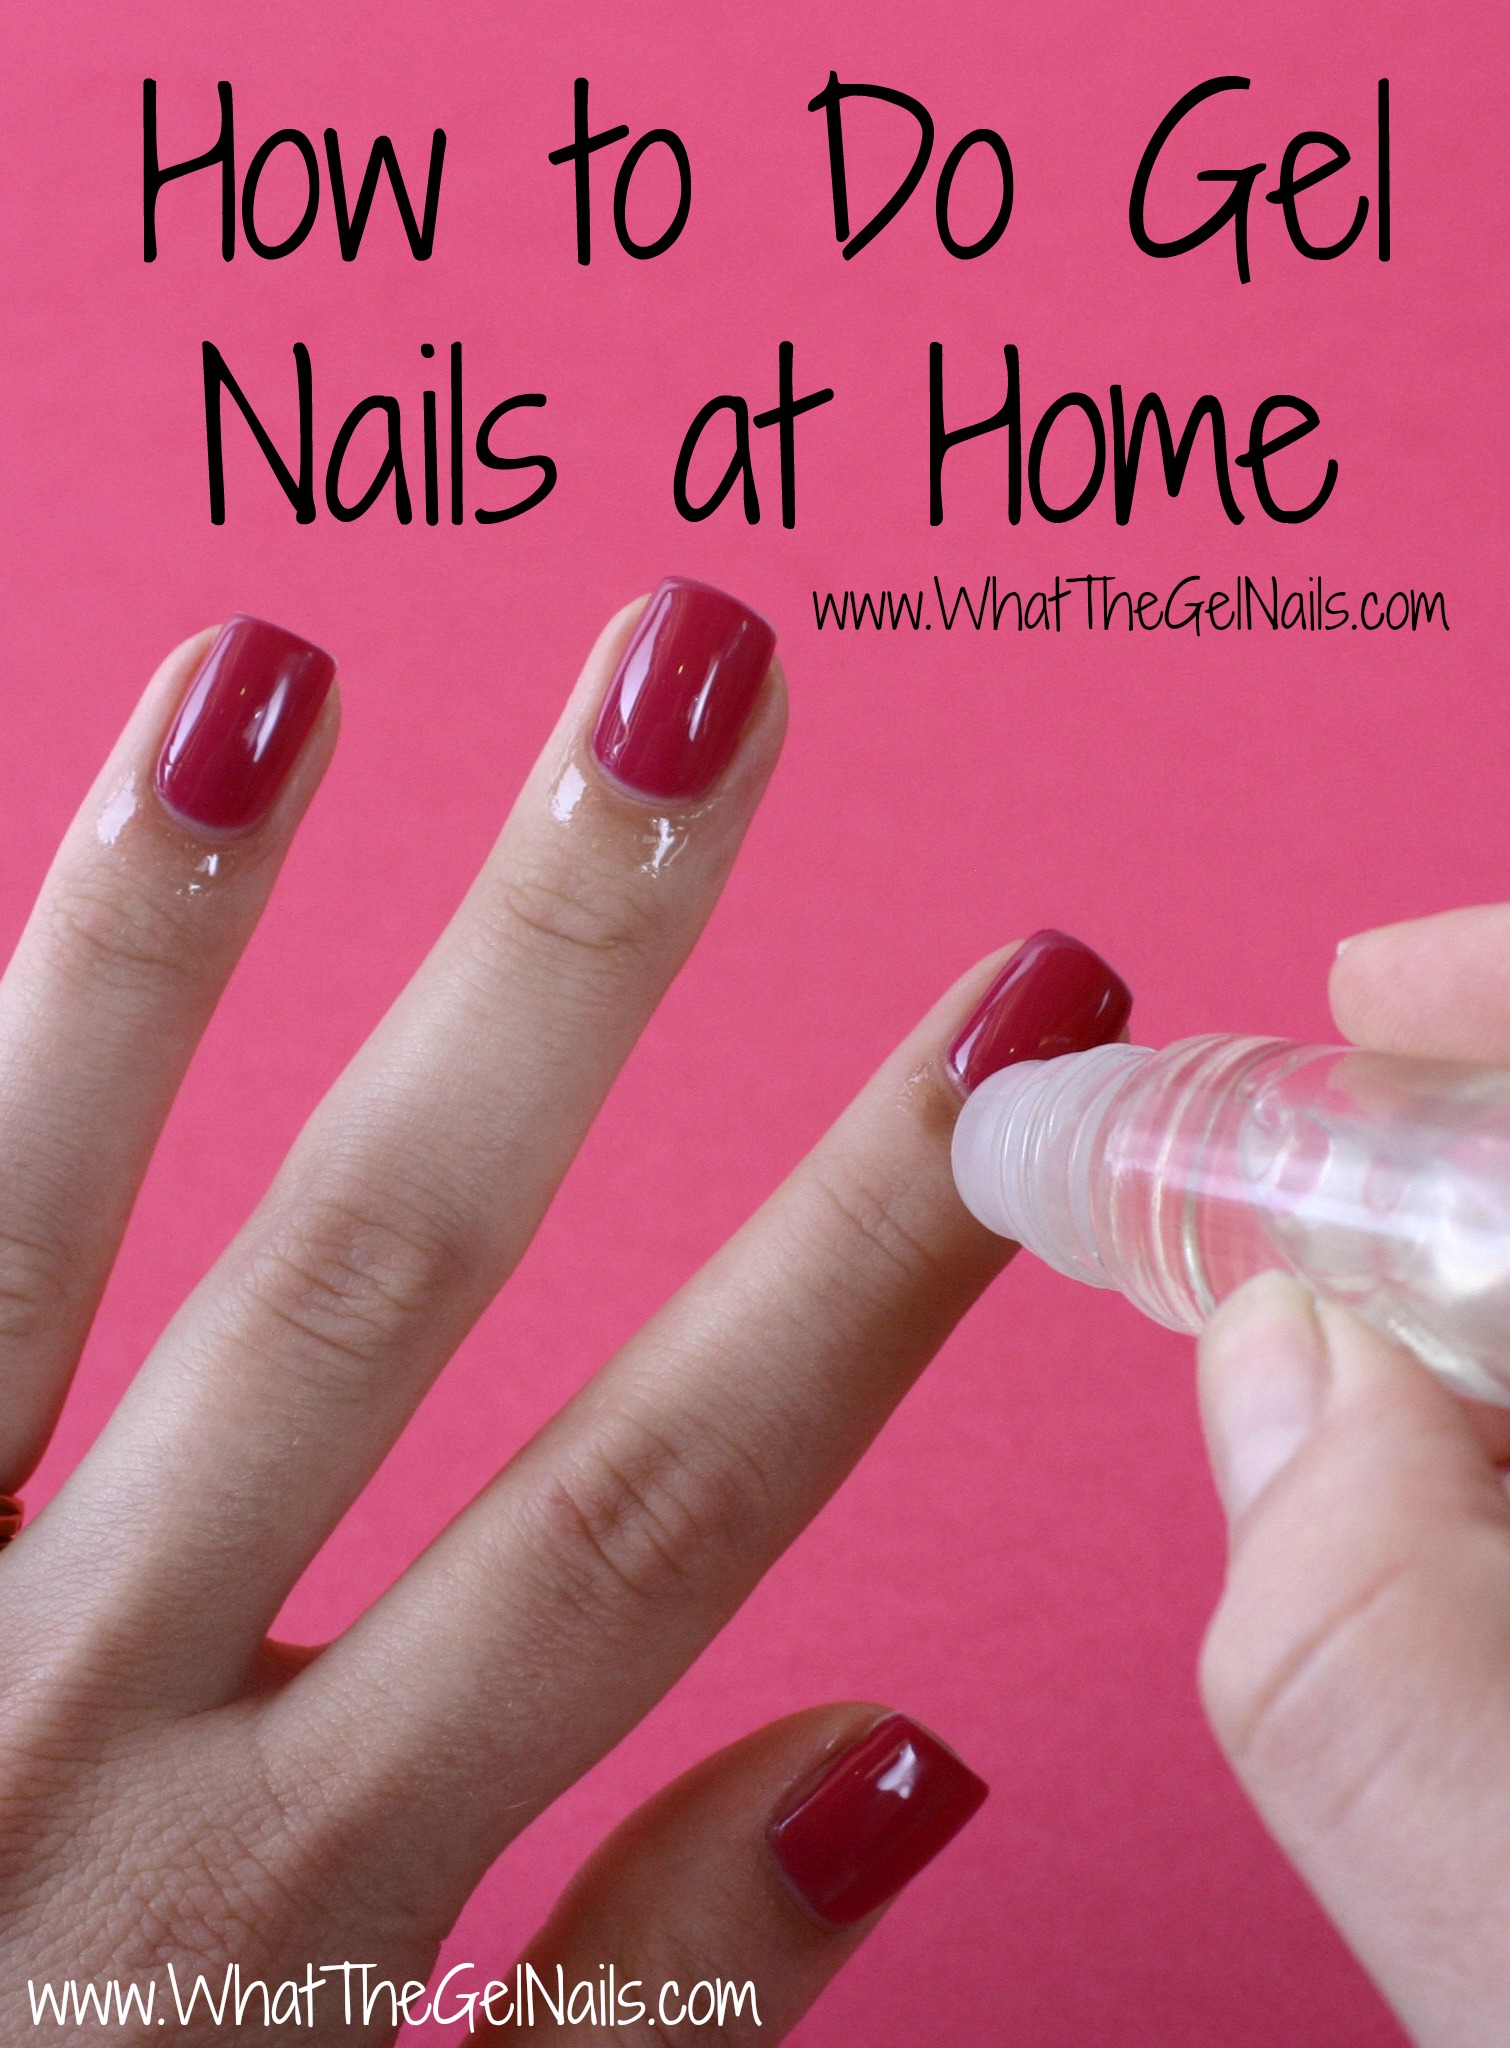 To do gel nails at home how to do gel nails at home solutioingenieria Images